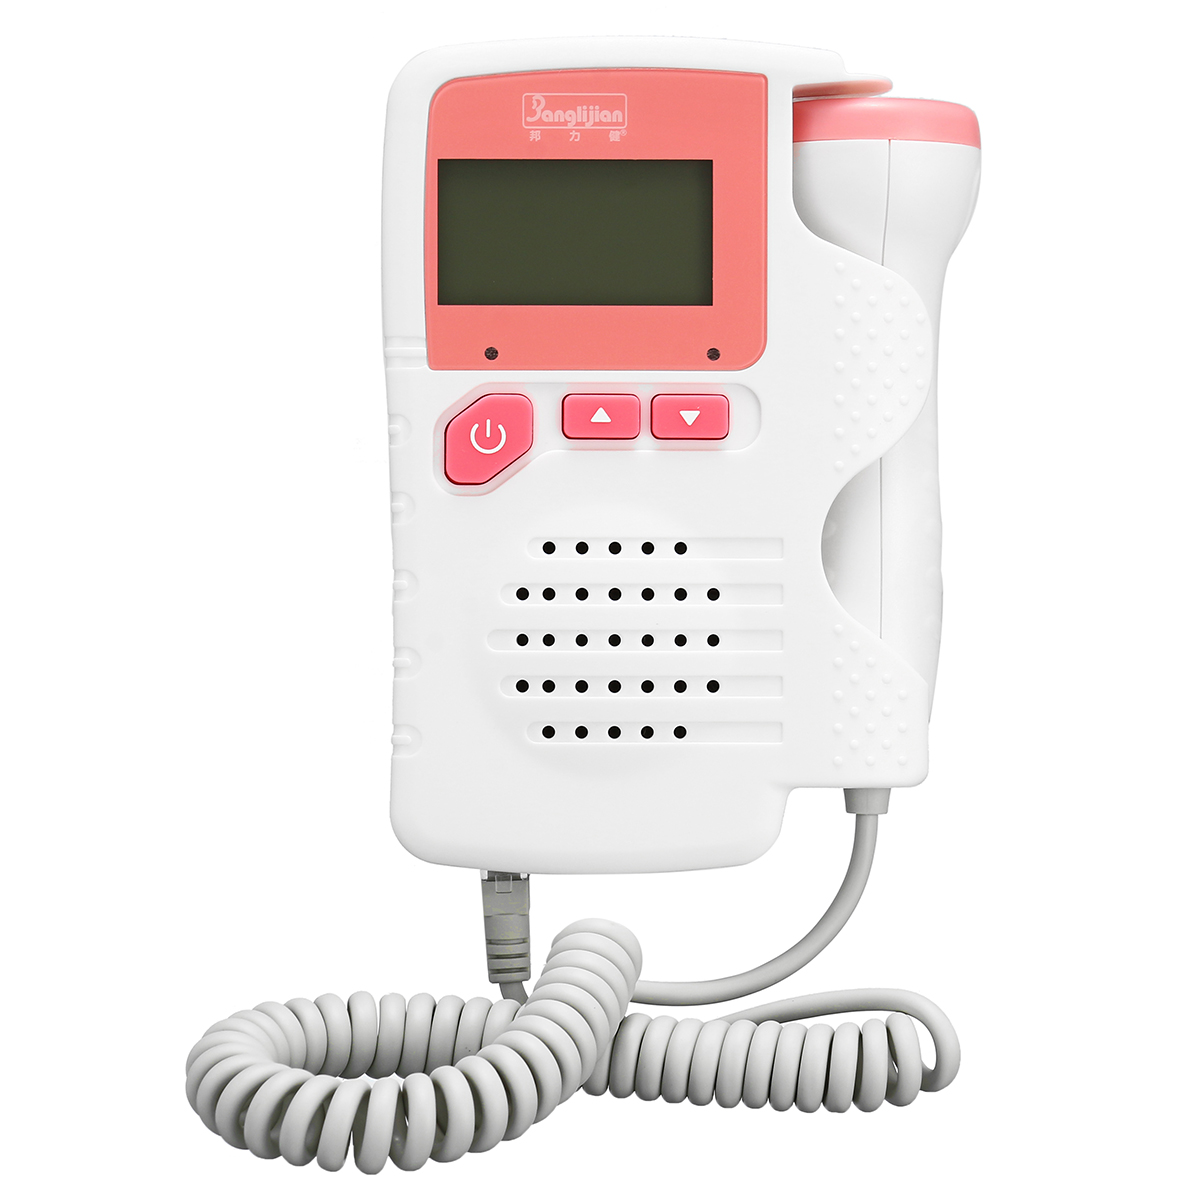 2.0MHz LCD Digital Prenatal Fetal Doppler Heart Monitor